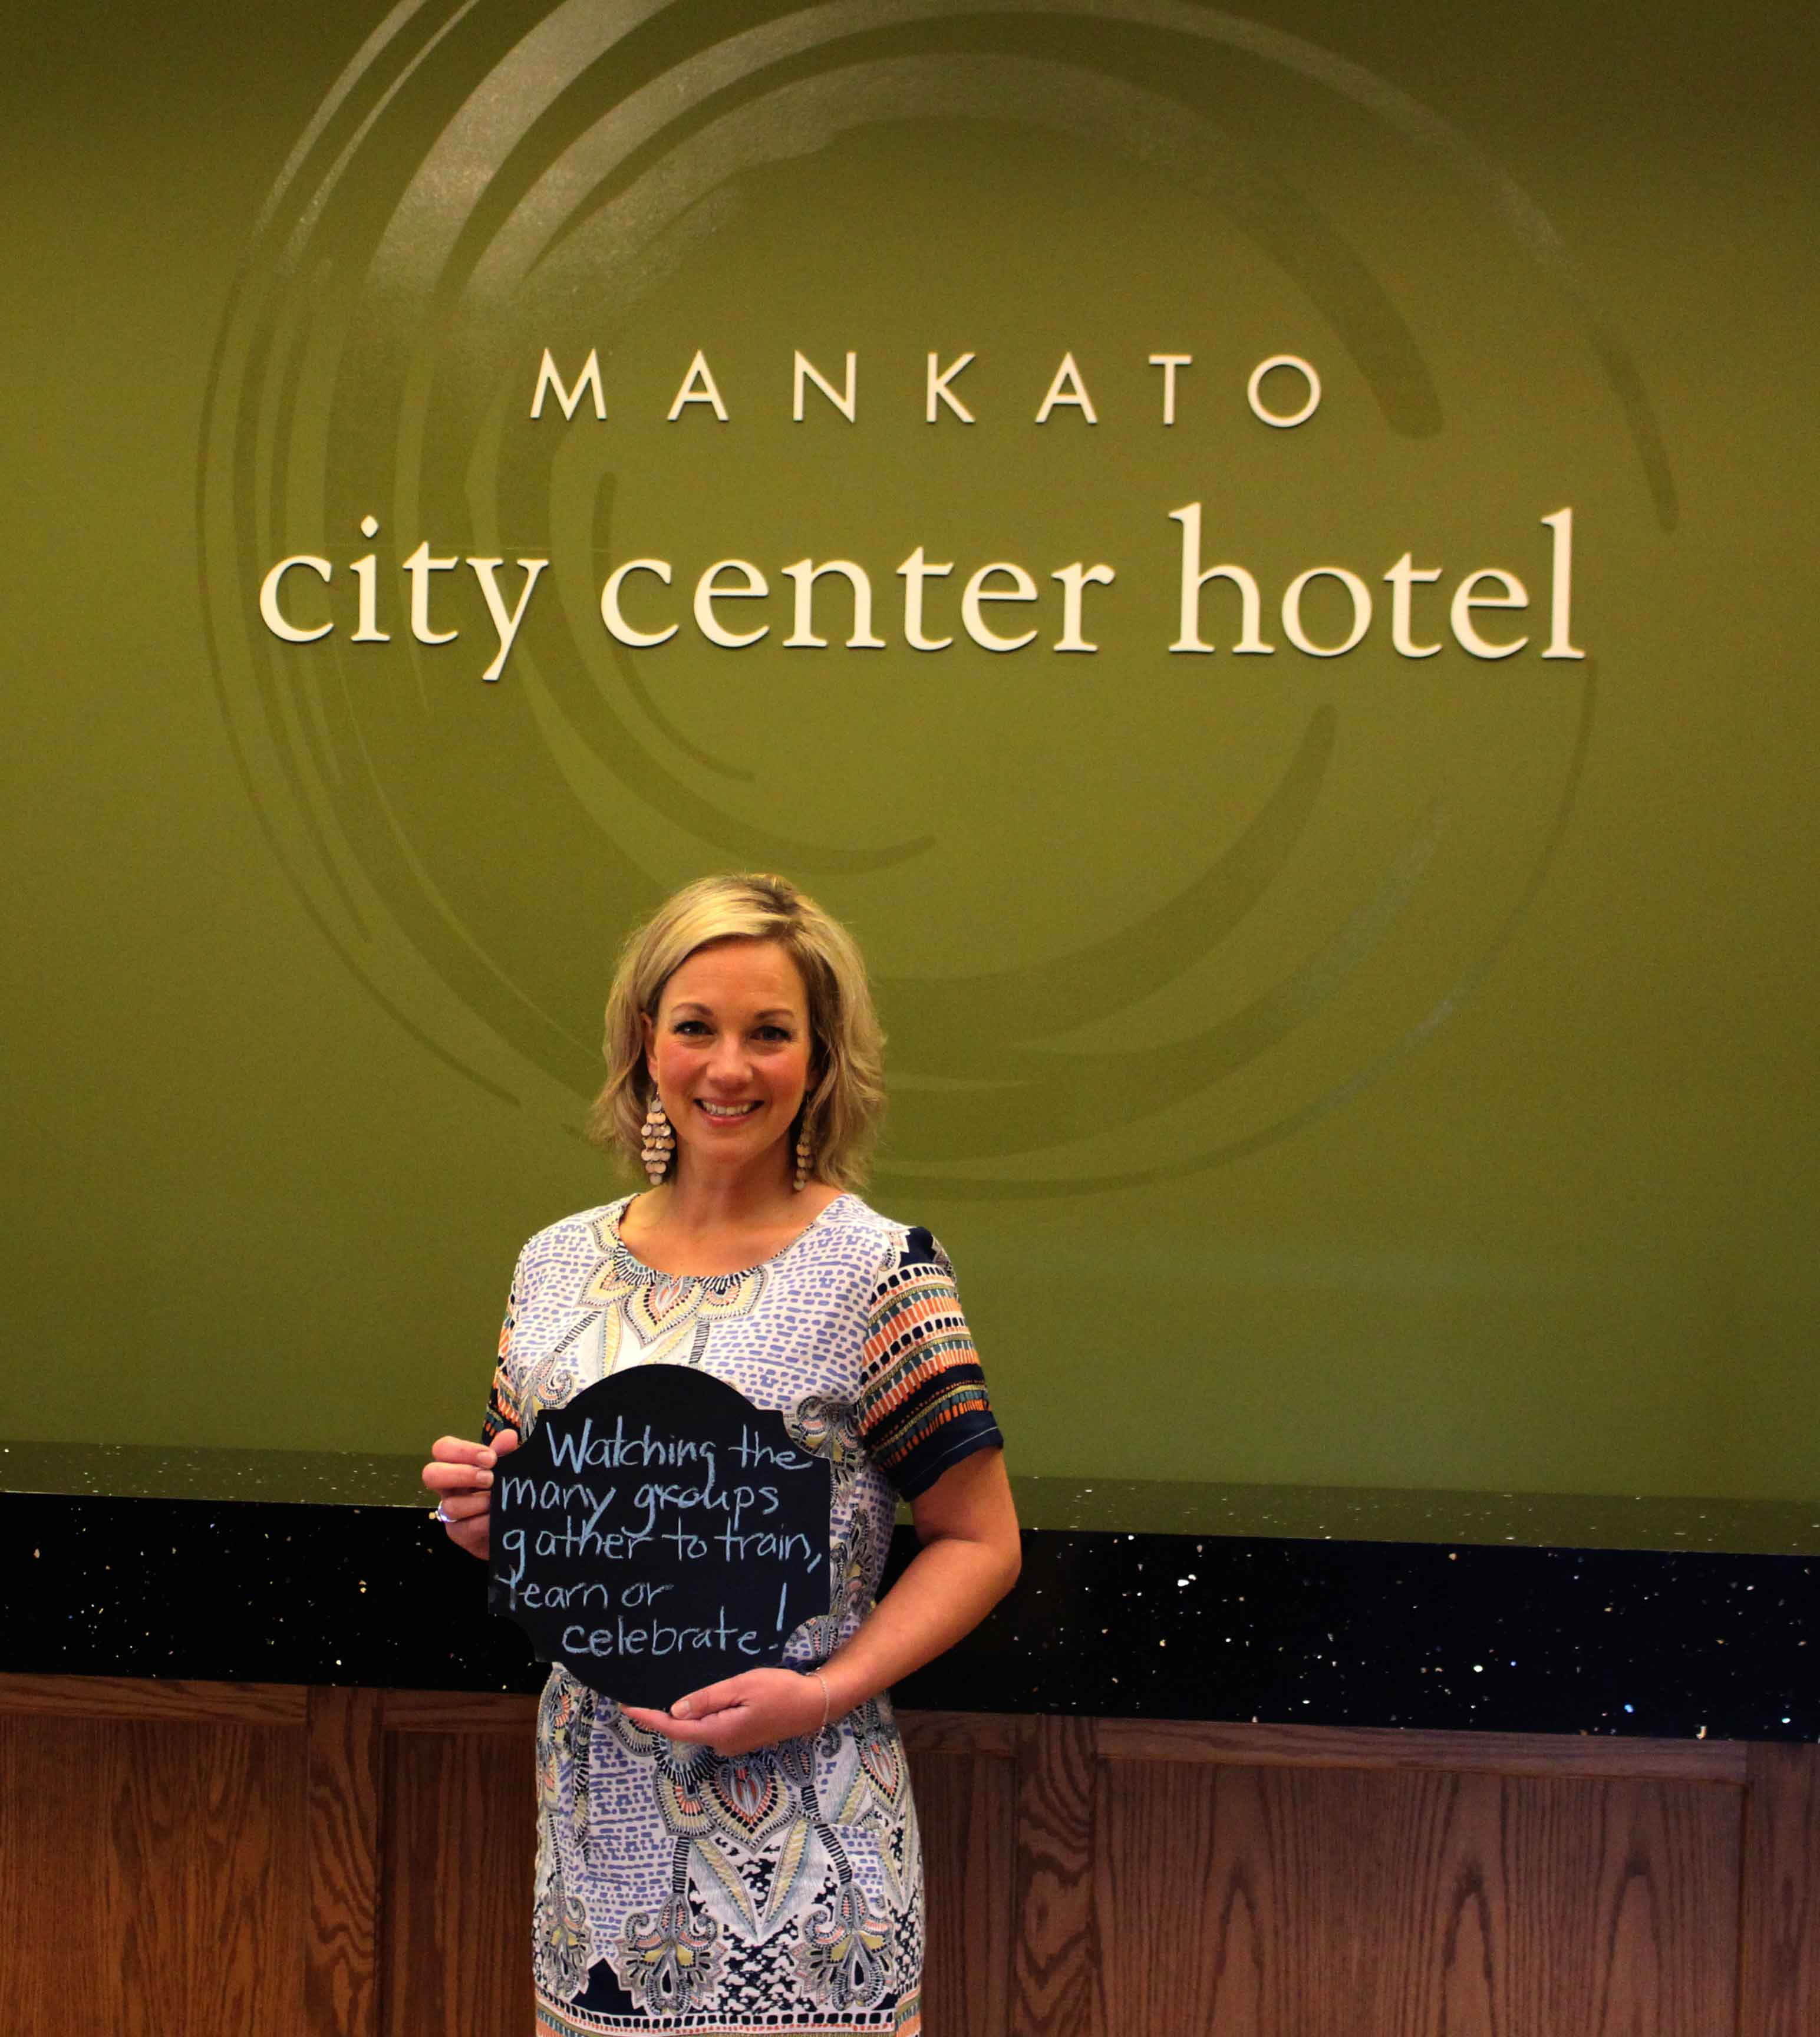 Erin-Herding - Mankato City Center Hotel